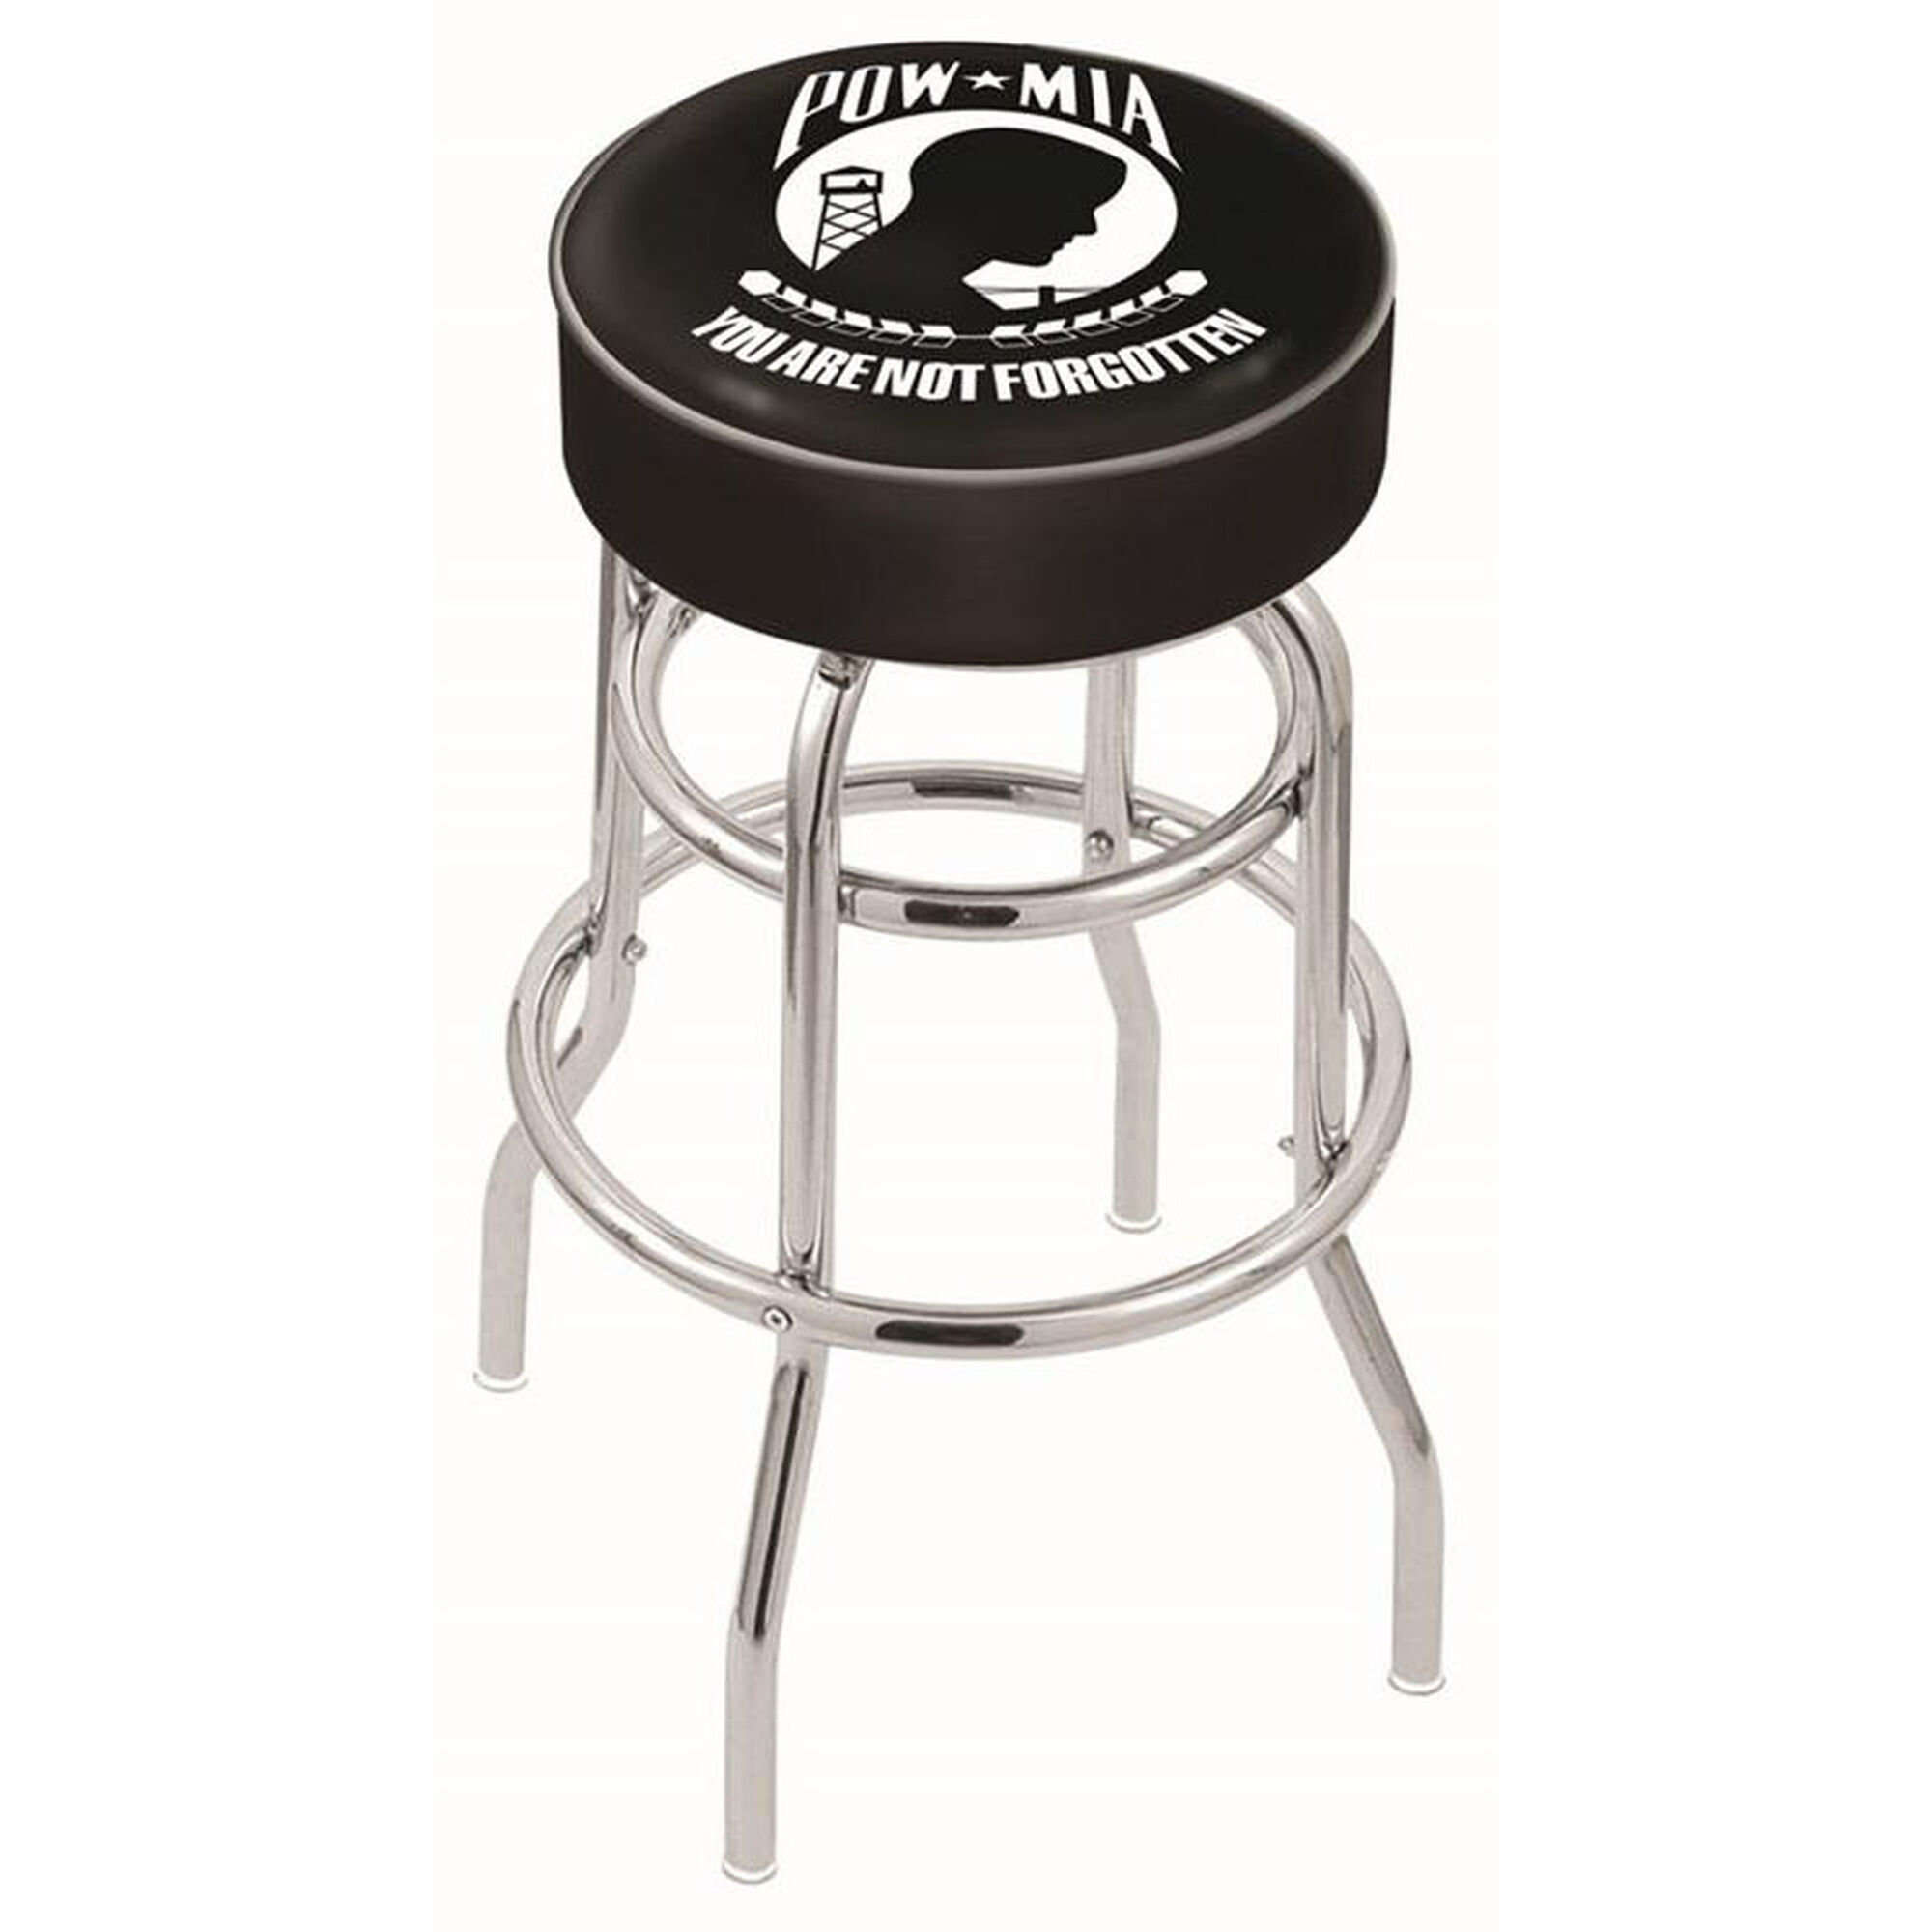 Pow Swivel Counter Stool L7c125powmia Restaurantfurniture4lesscom